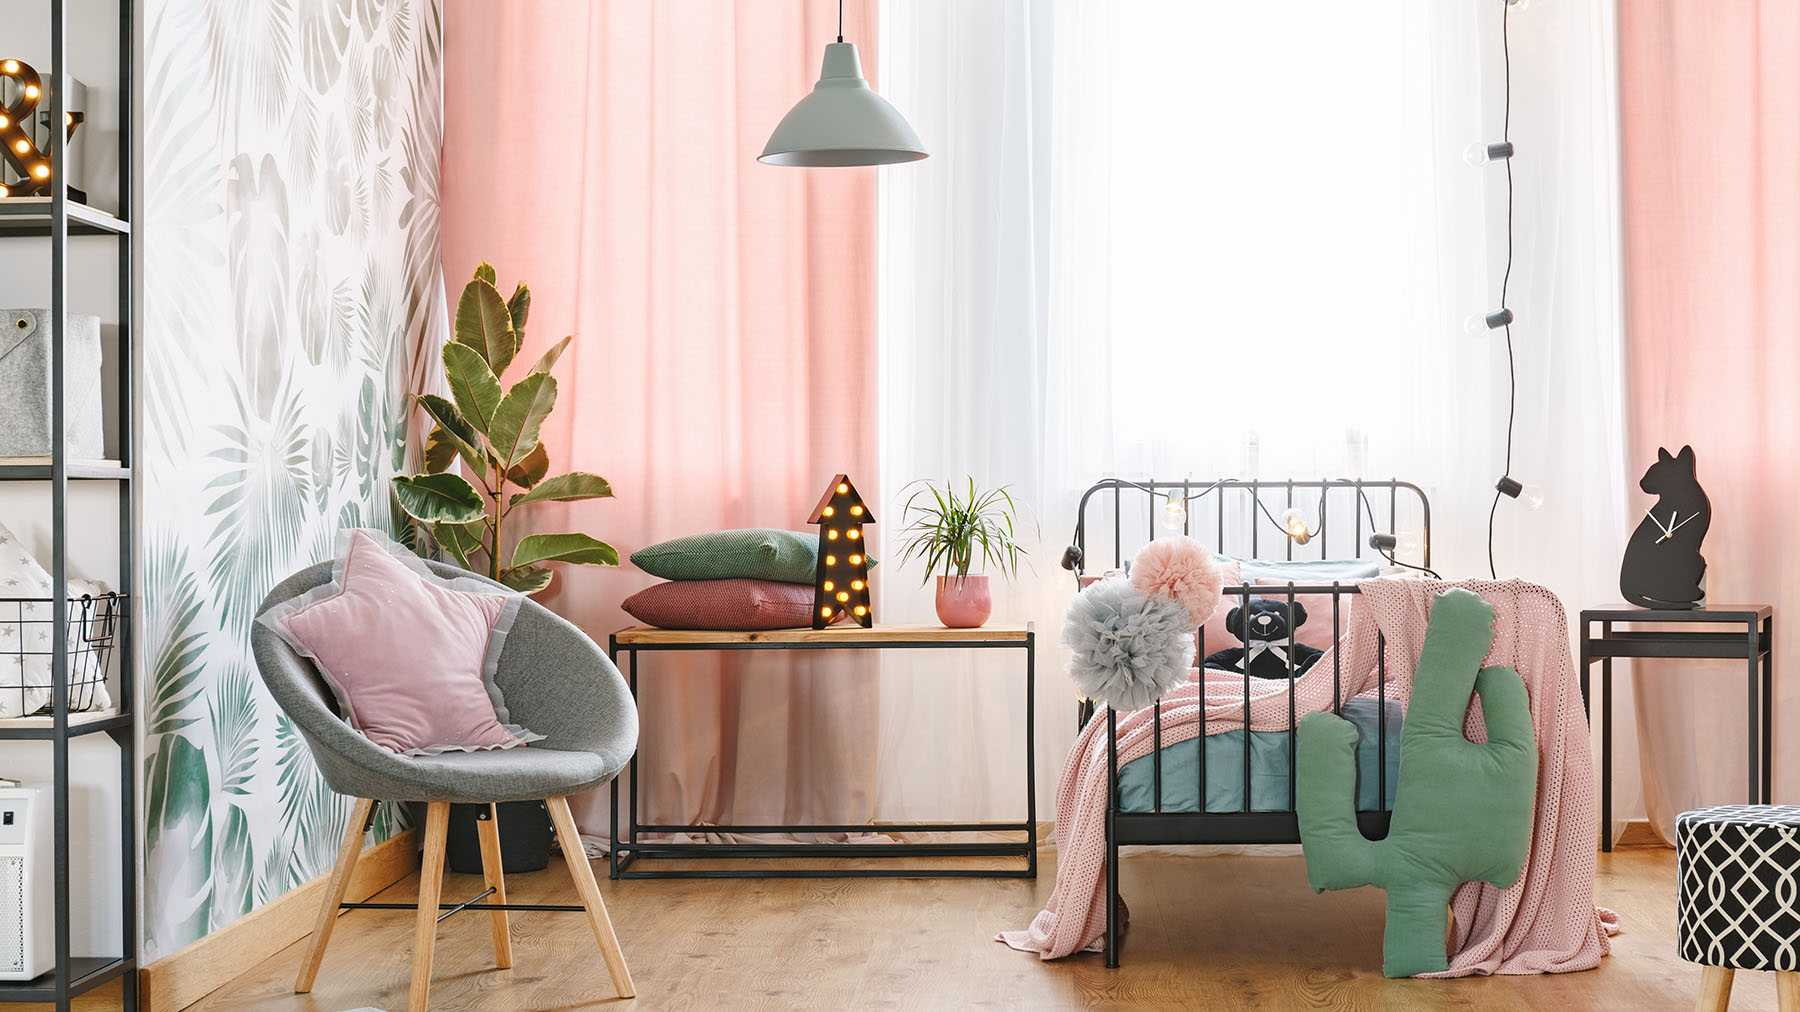 The best blush pink accessories for your bedroom | Home ...